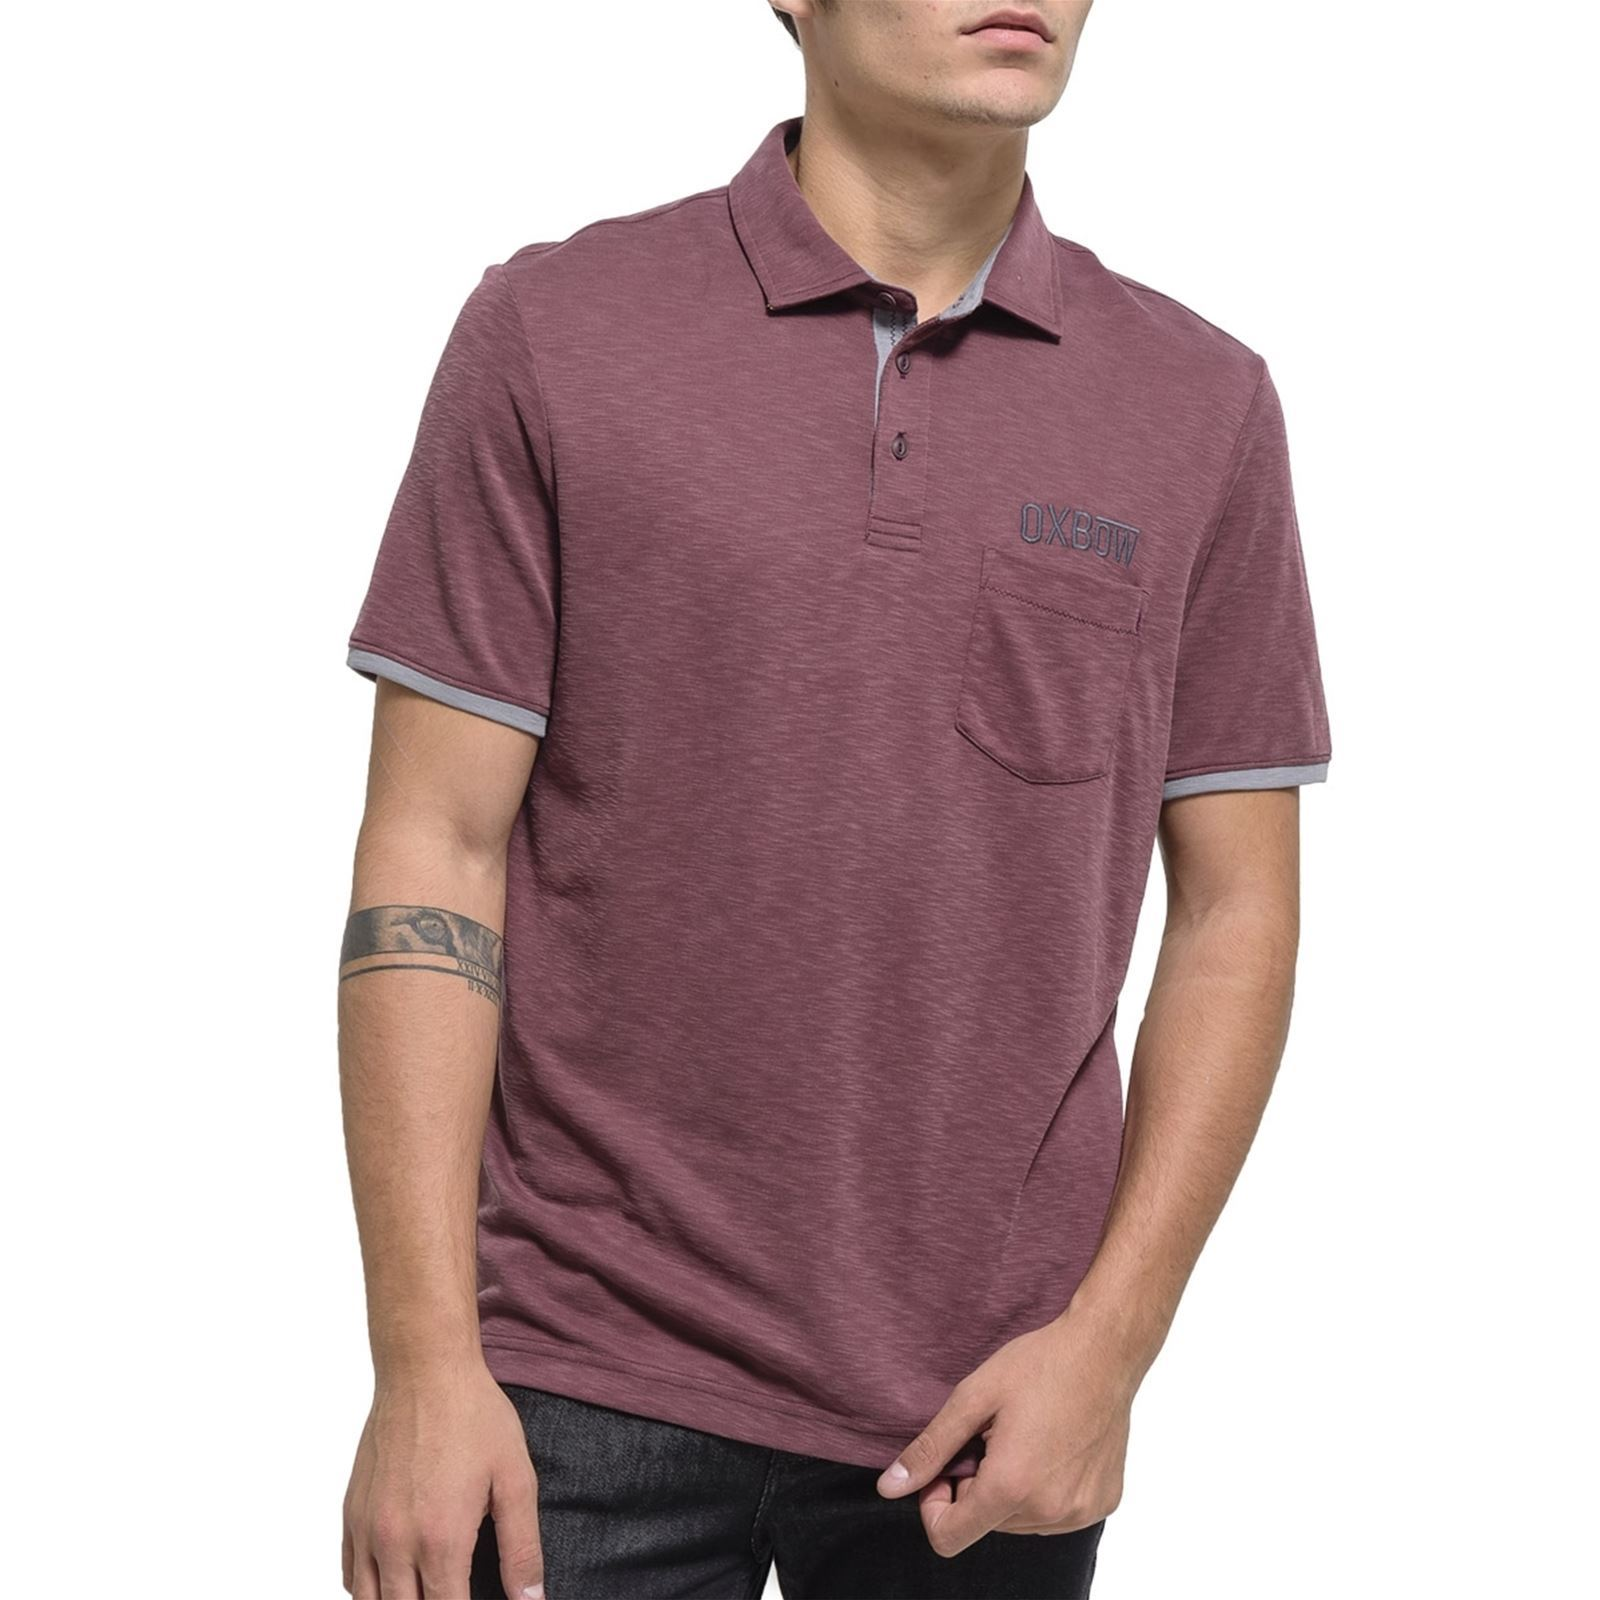 Homme Courtes Prune V Oxbow Manches NaeviPolo xdBCoe